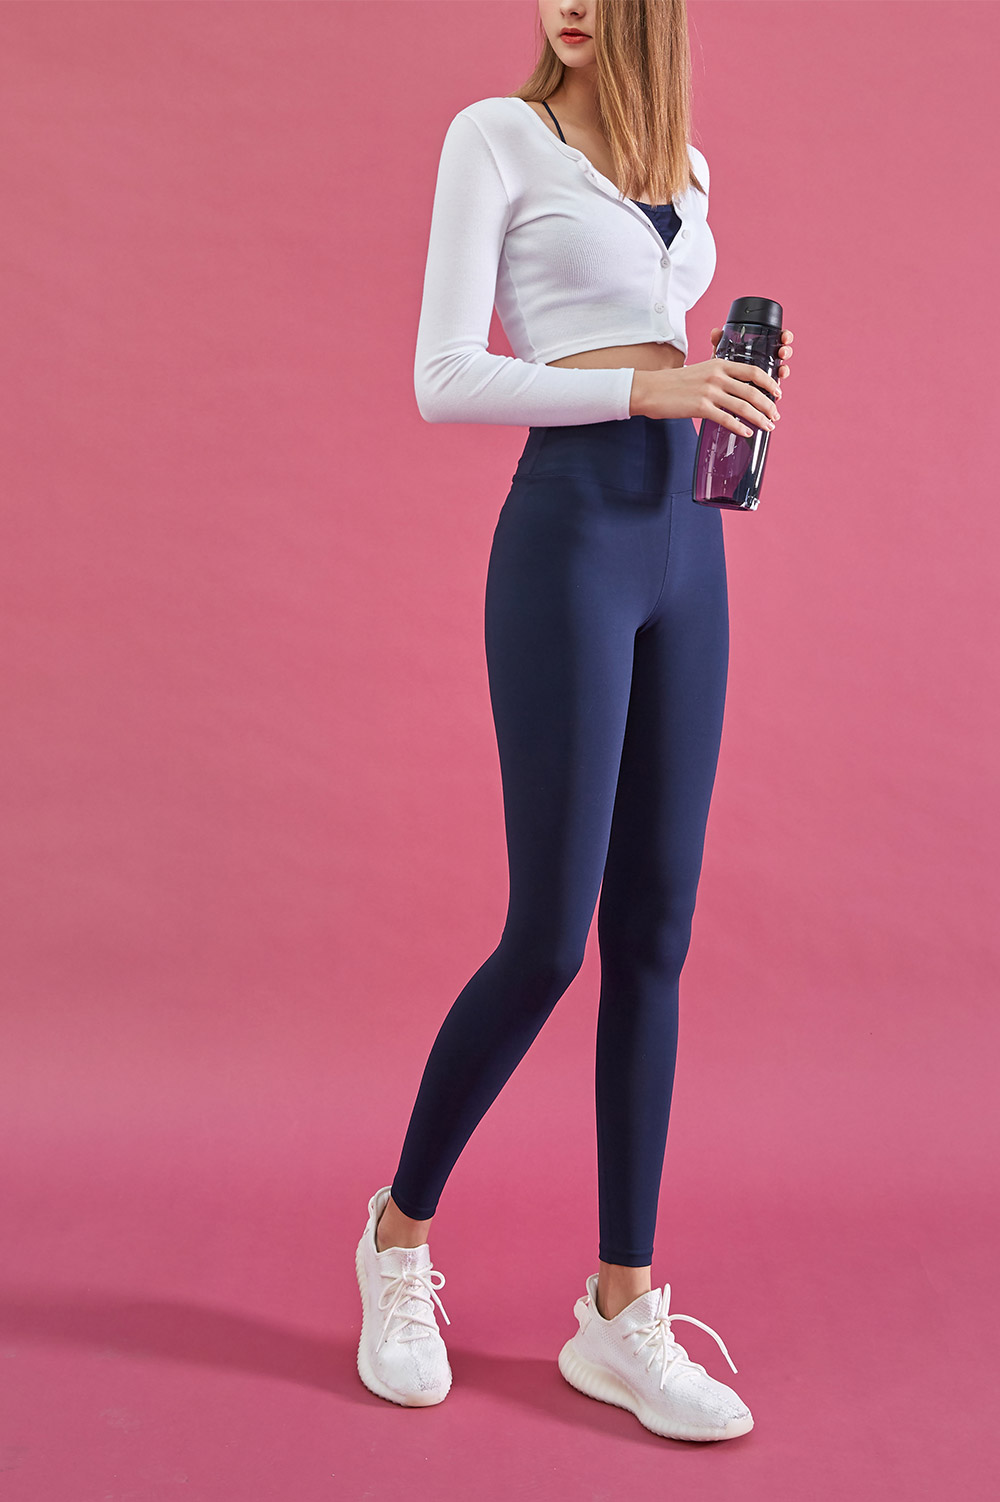 //cdn.nhanh.vn/cdn/store/29770/psCT/20190108/11027736/_5Kg_Perfect_Line_Leggings_Plus_(2019_22_41).jpg